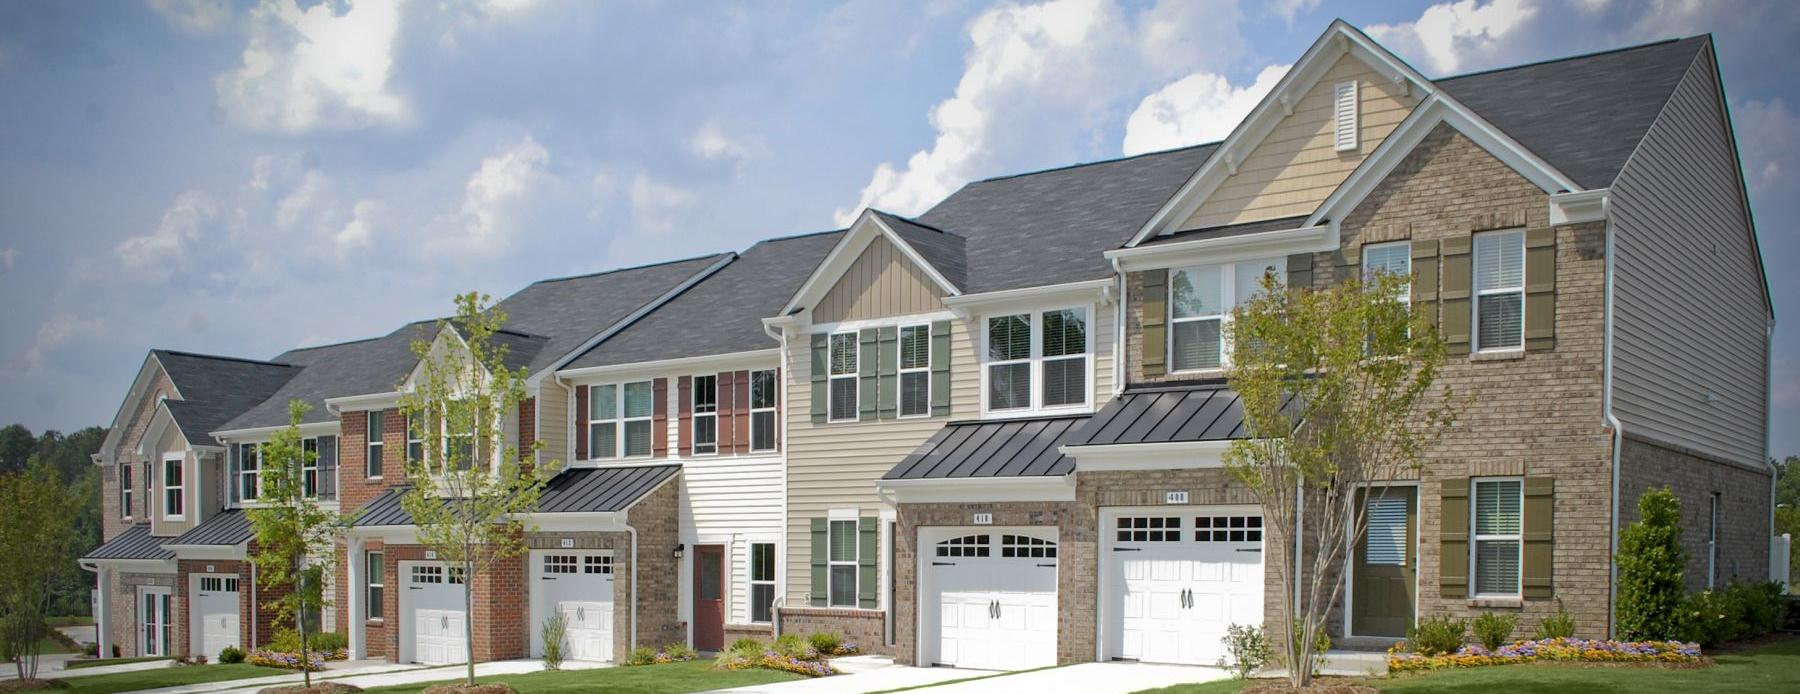 new homes for sale at woods at west chester in west chester oh within the lakota school district. Black Bedroom Furniture Sets. Home Design Ideas